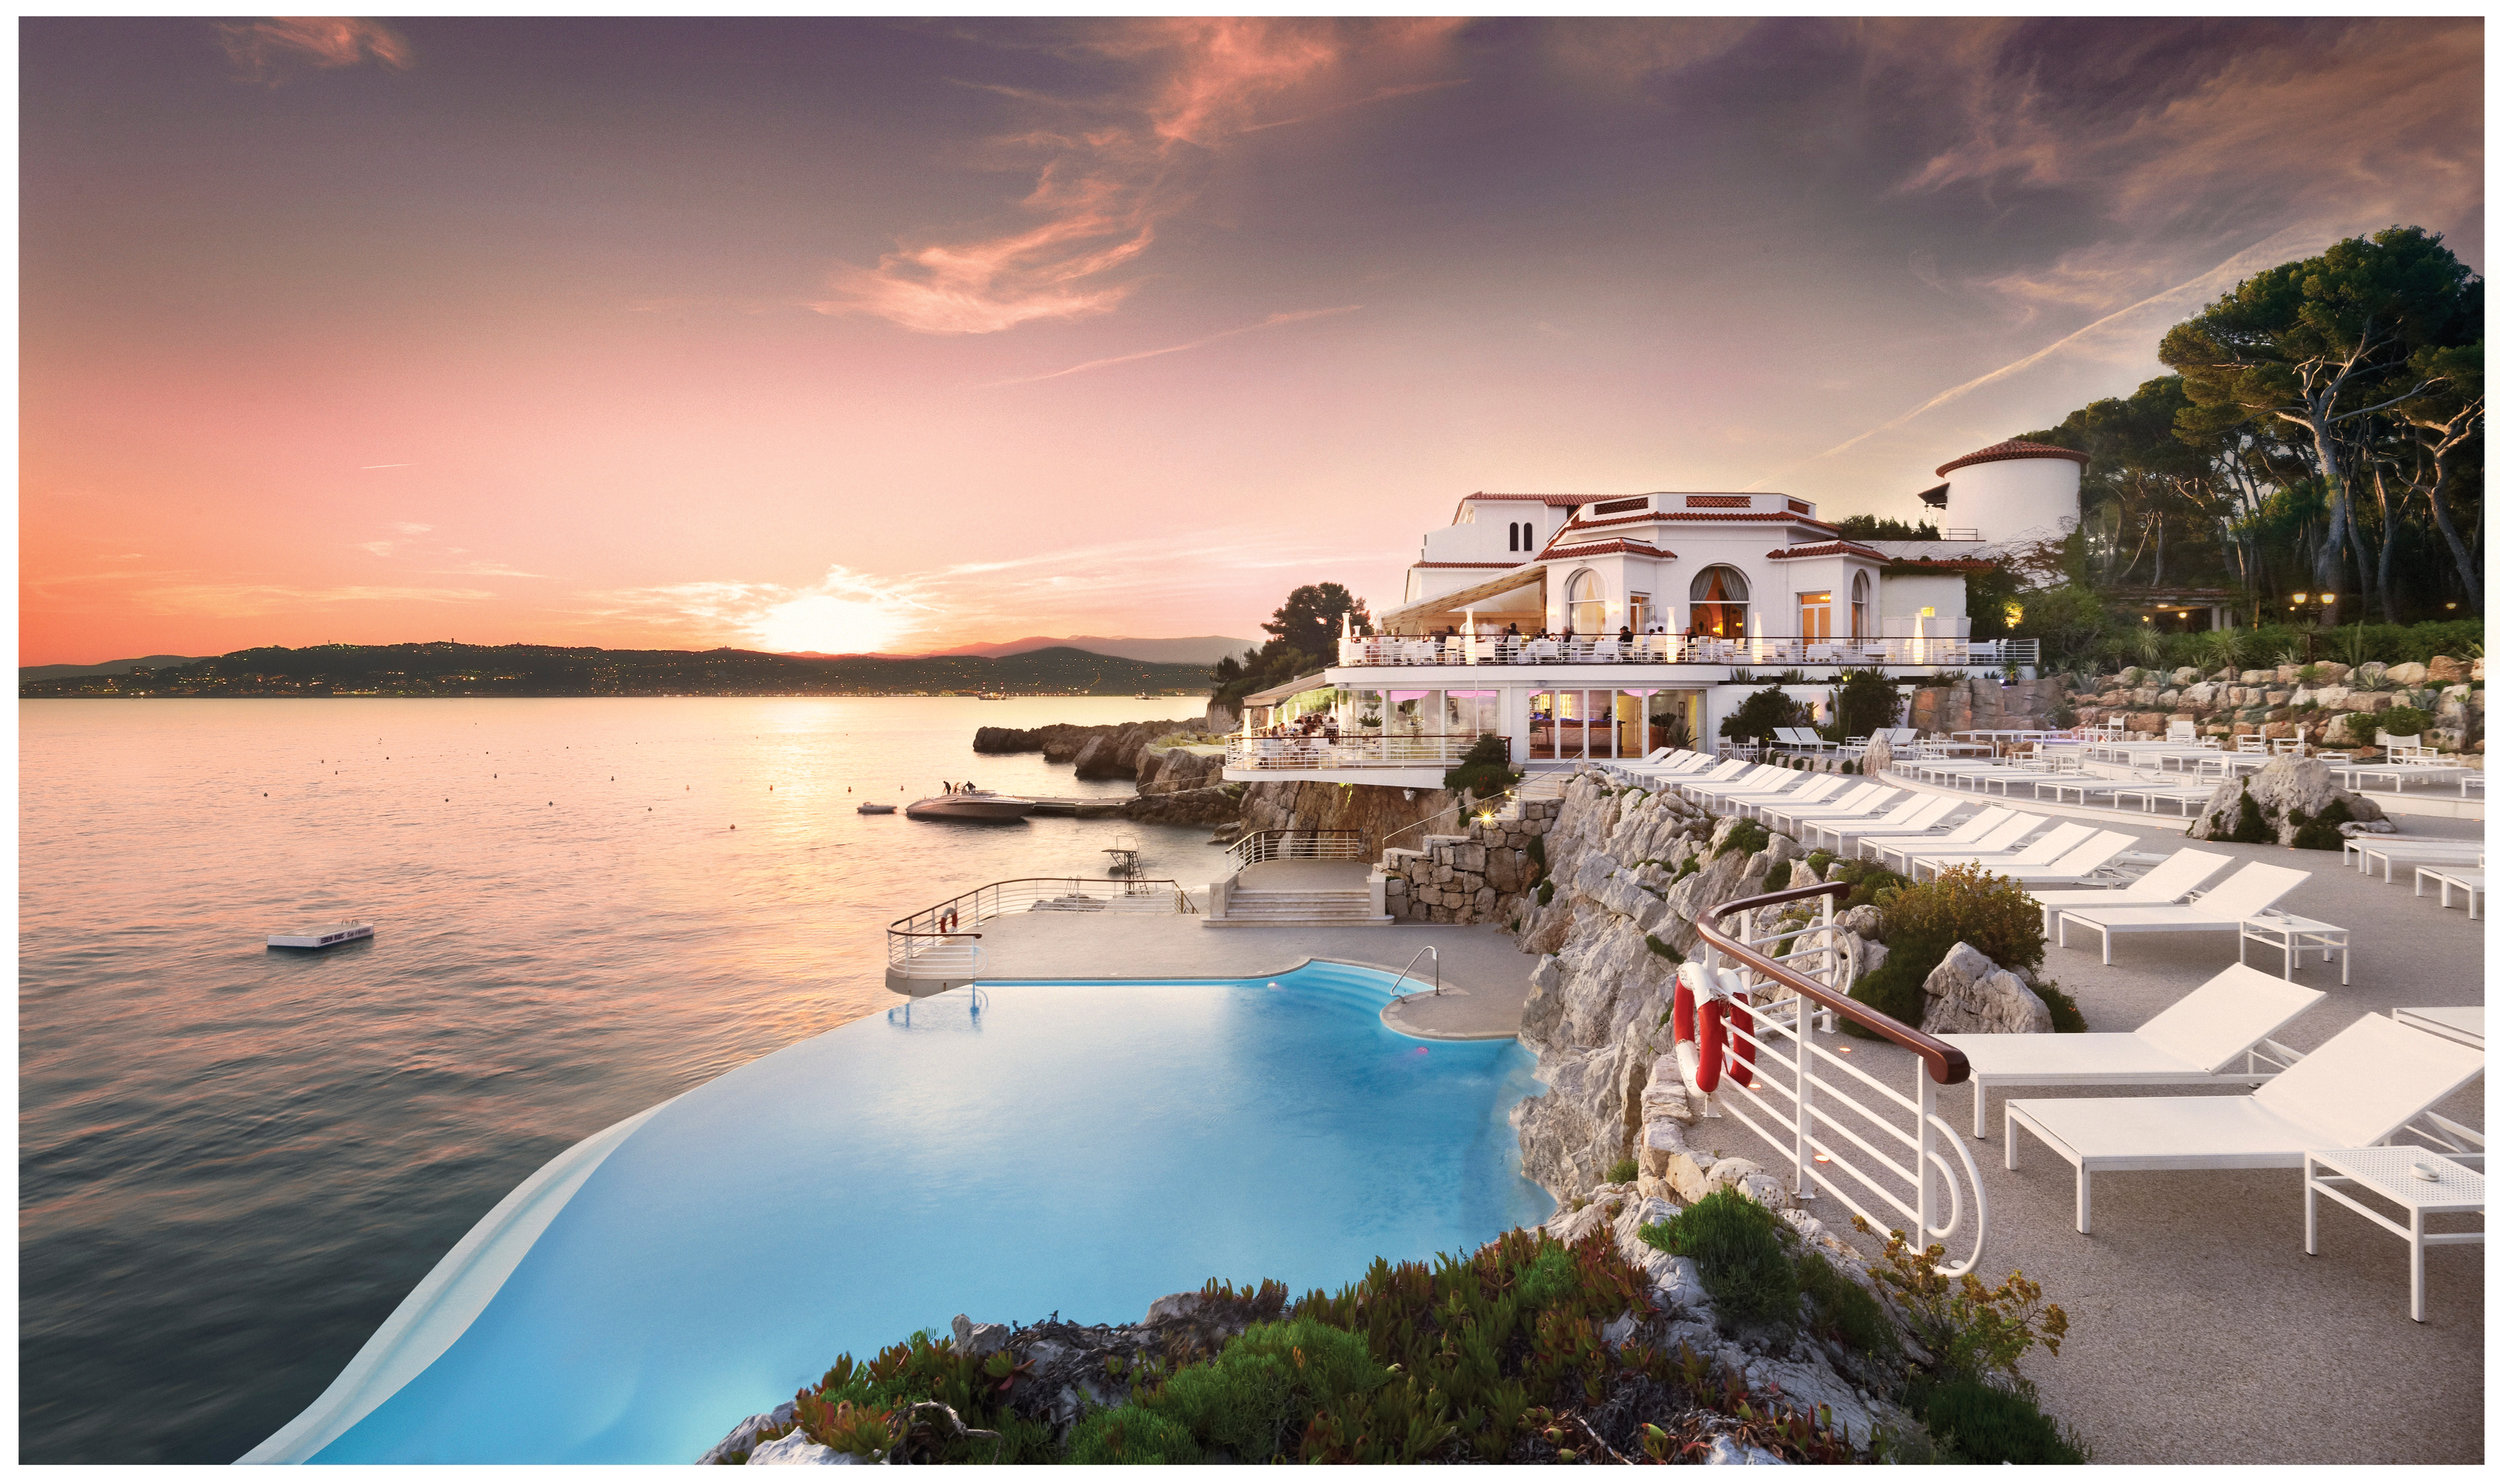 Swimming at sunset at Hotel du Cap–Eden-Roc, French Riviera.